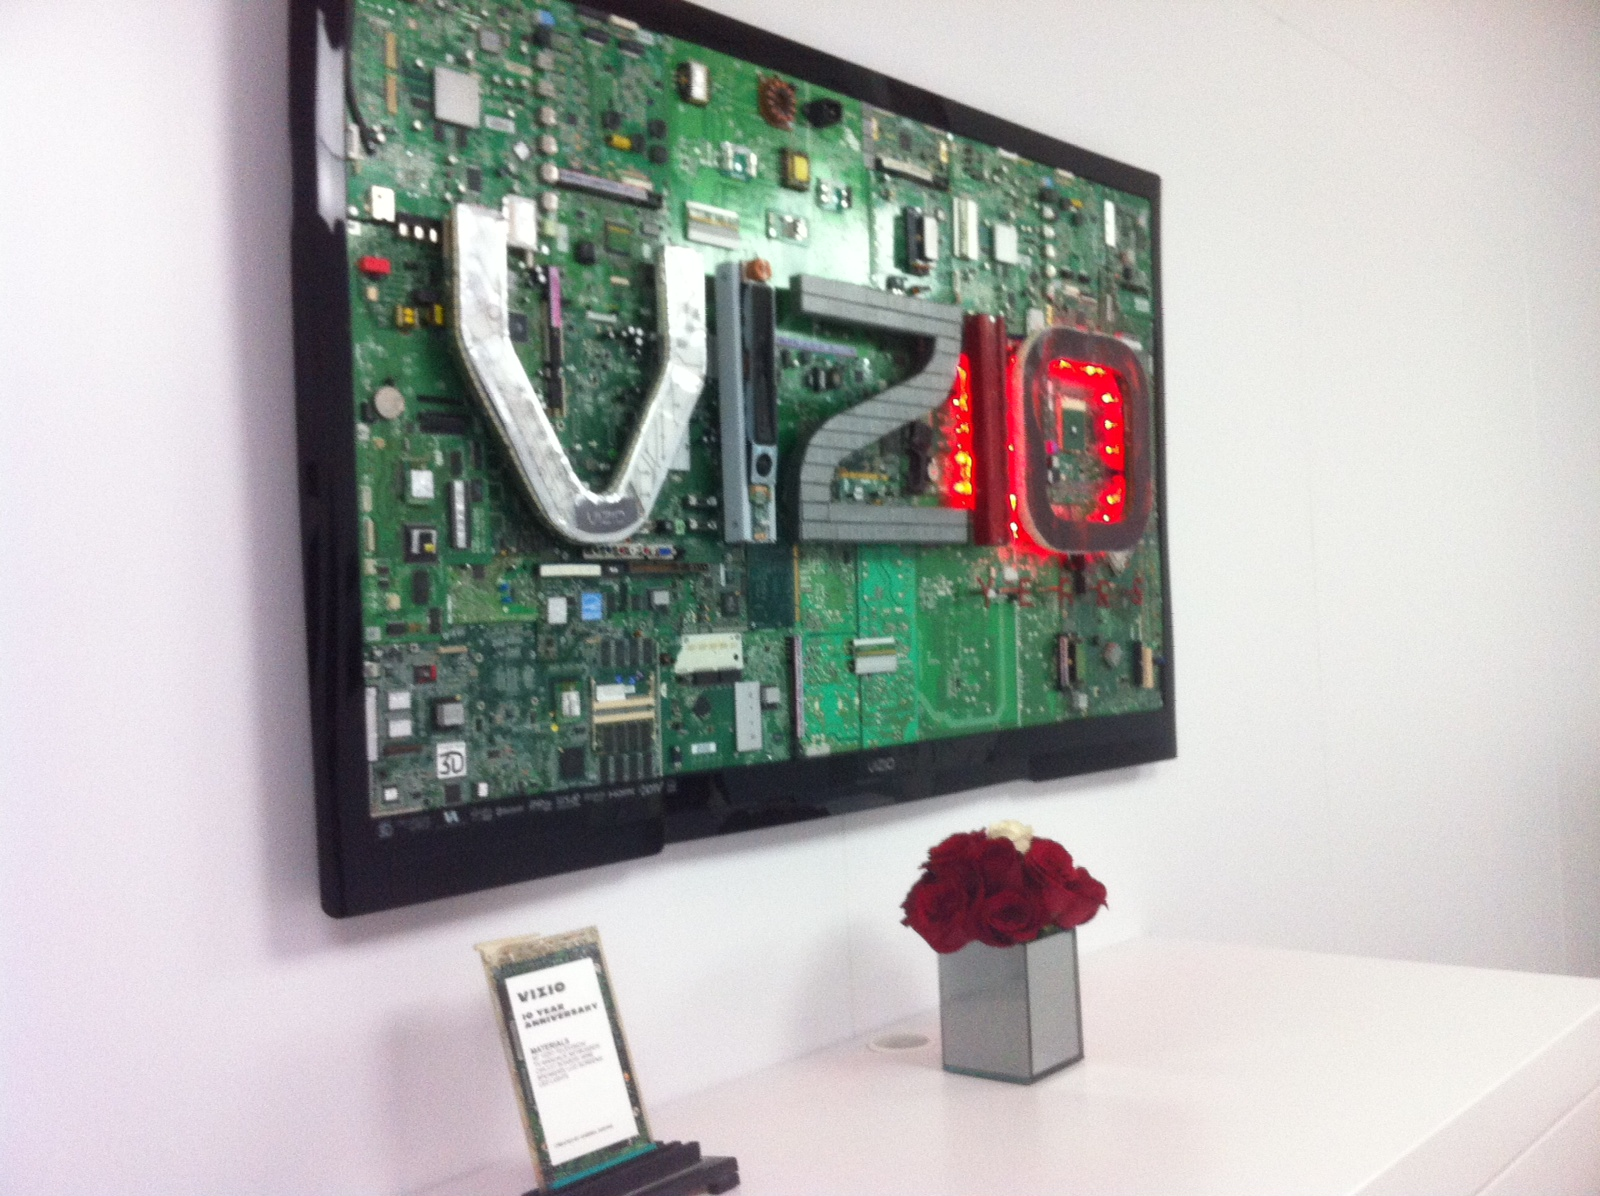 Vizio 10 Year Anniversary  - Commissioned by Vizio